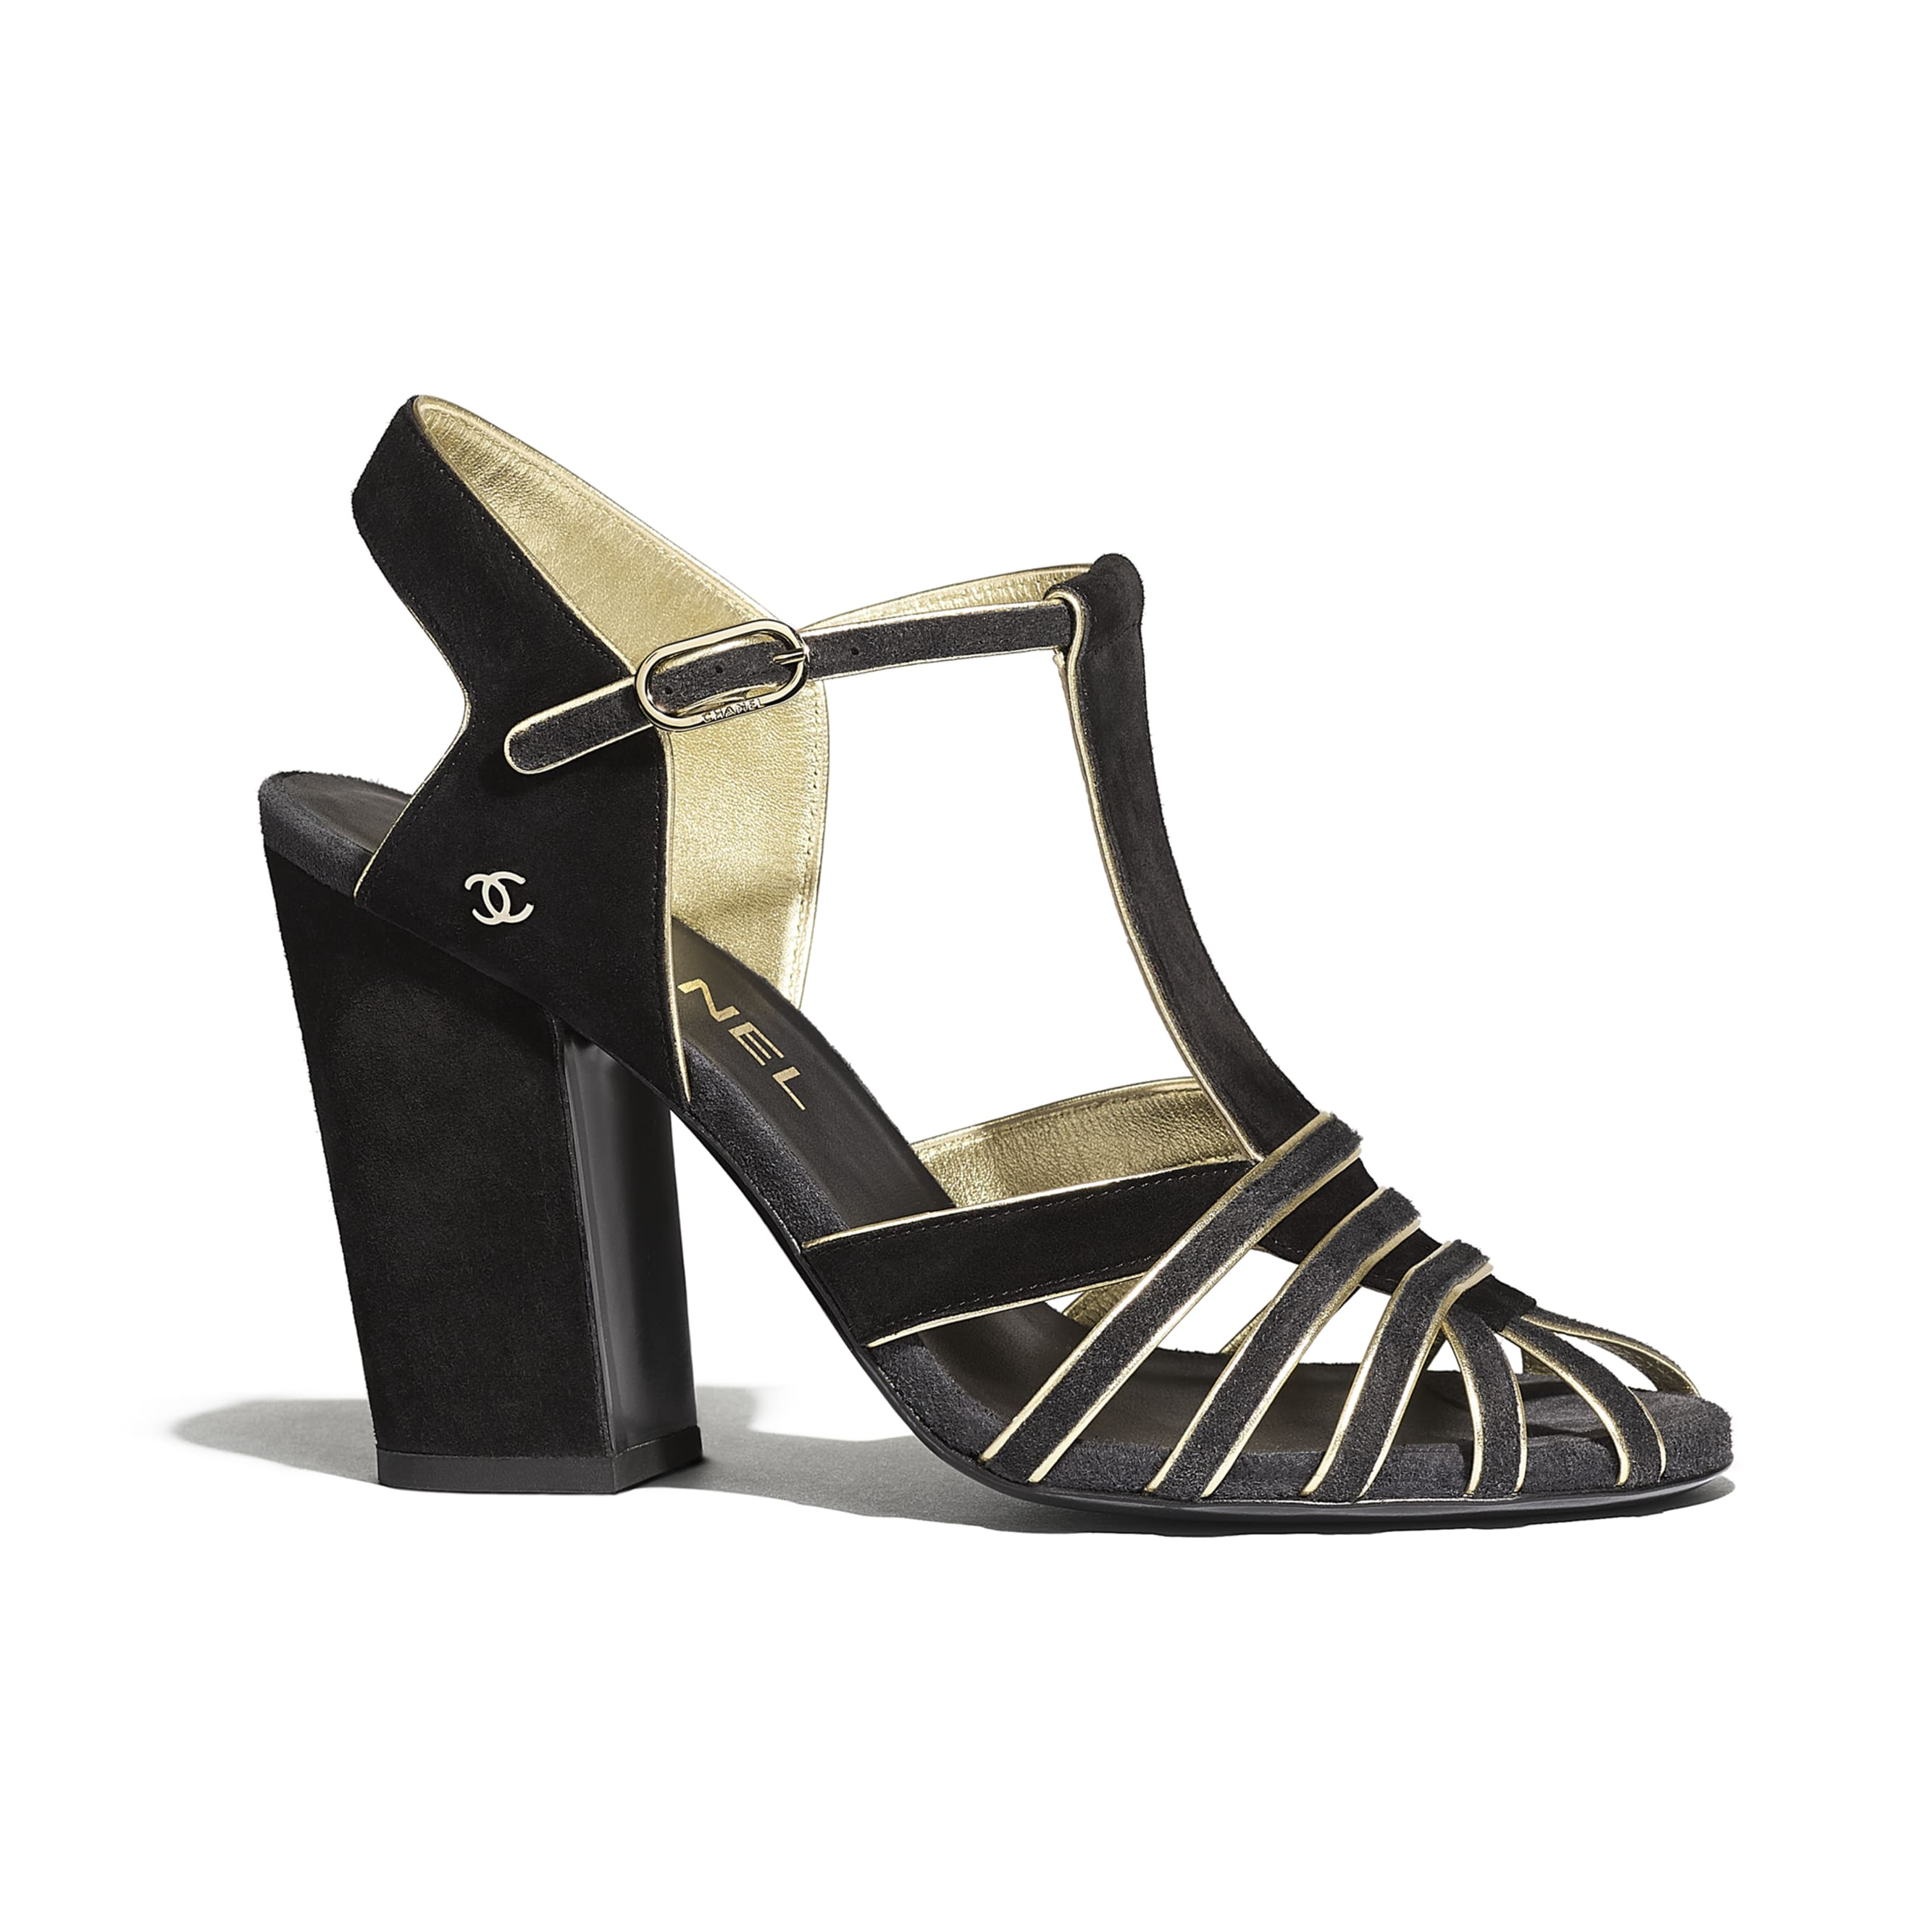 Sandals - Black & Gray - Suede Calfskin - Default view - see standard sized version